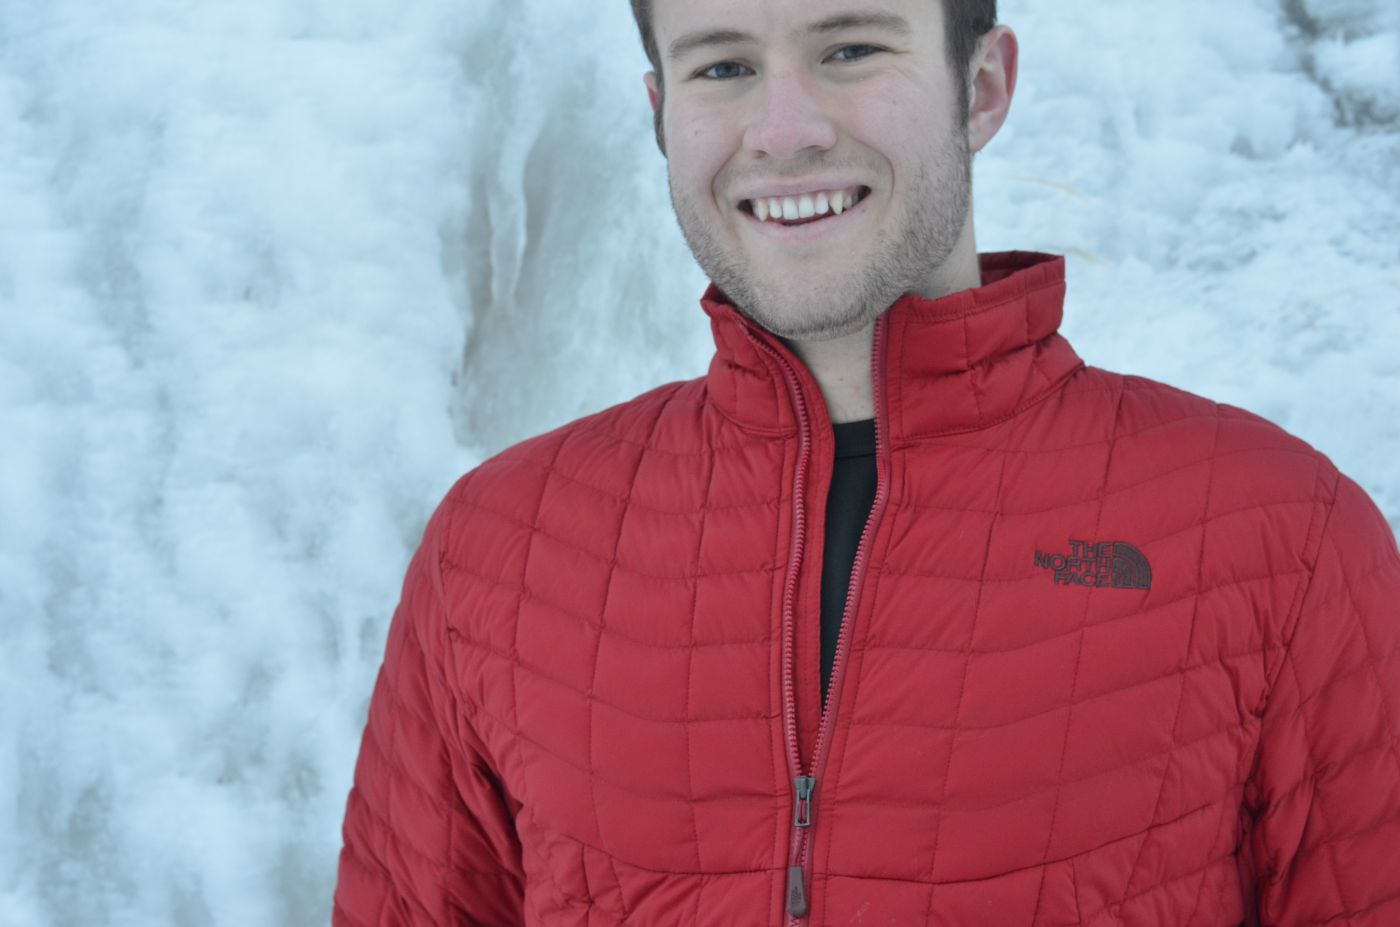 12da6b4a361a The North Face Stretch Thermoball Jacket Review - FeedTheHabit.com